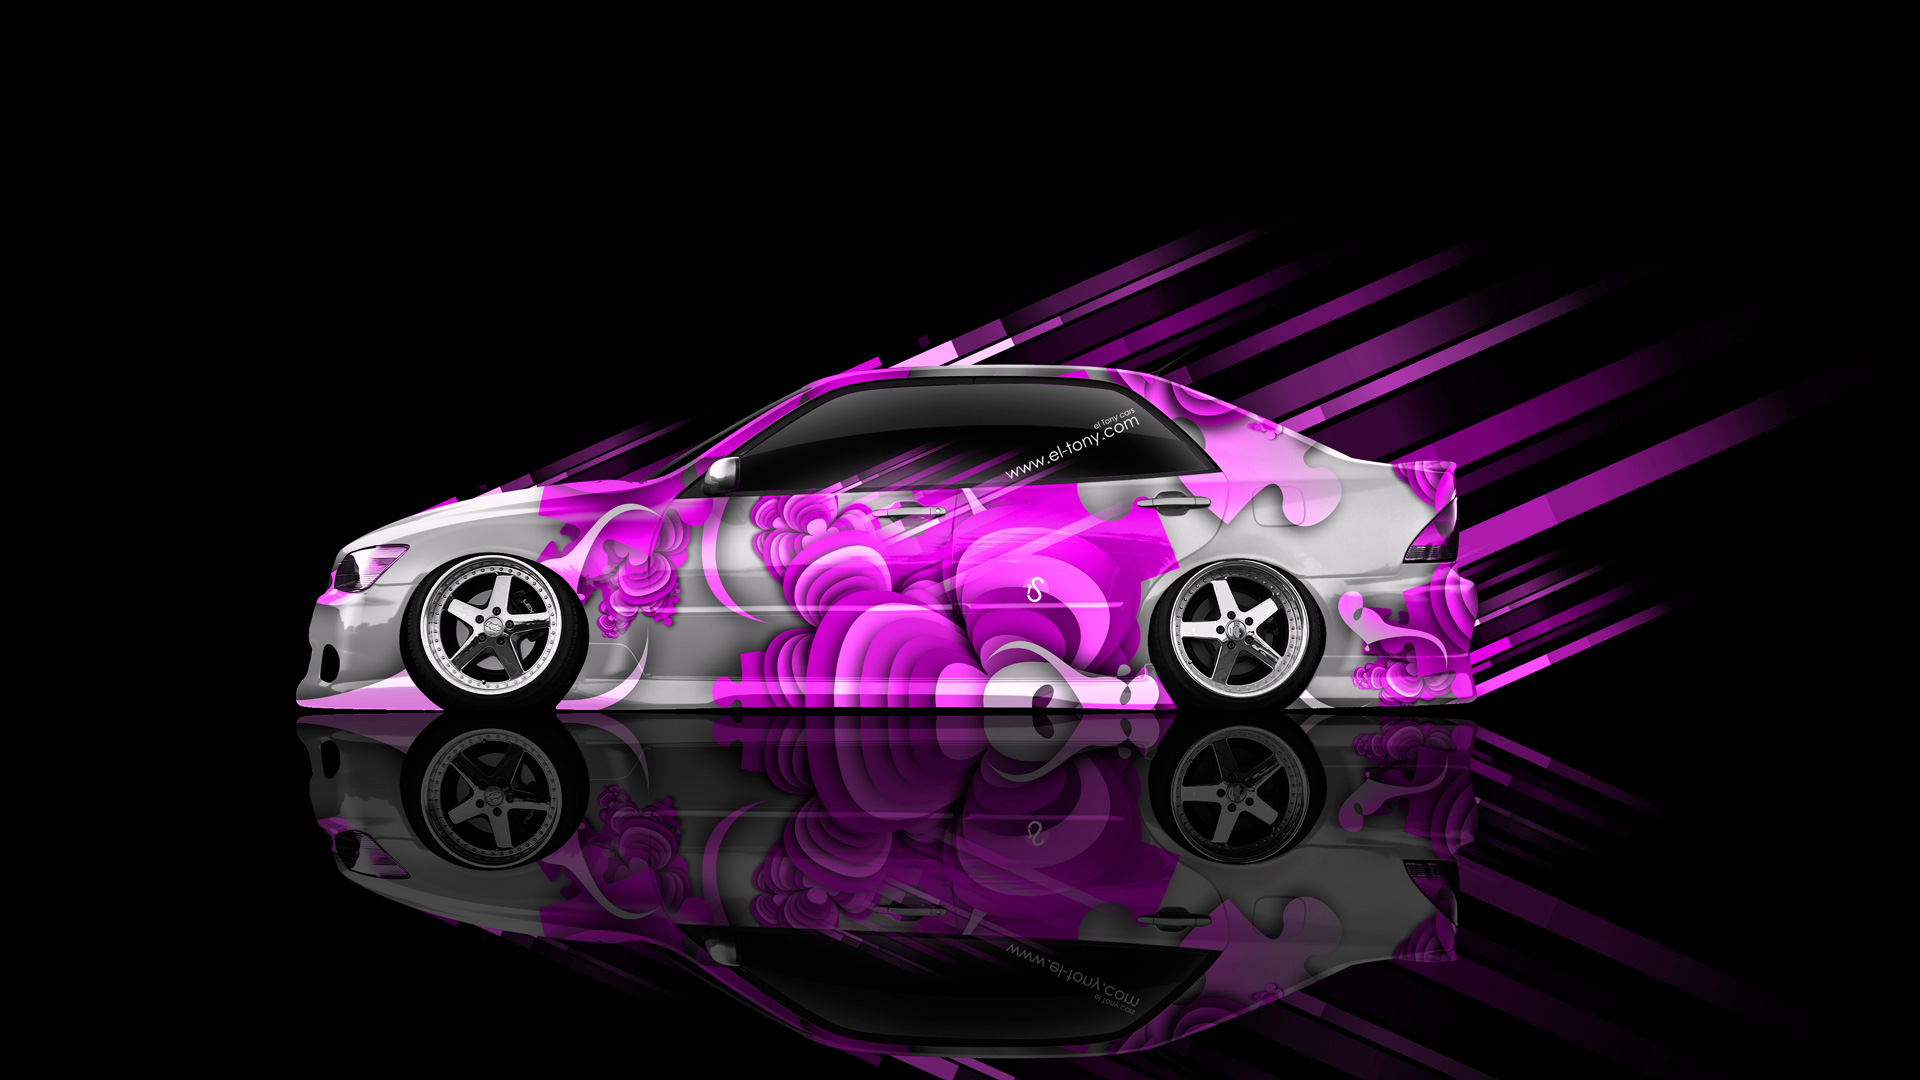 Superb Toyota Altezza JDM Side Abstract Aerography Car 2014 .